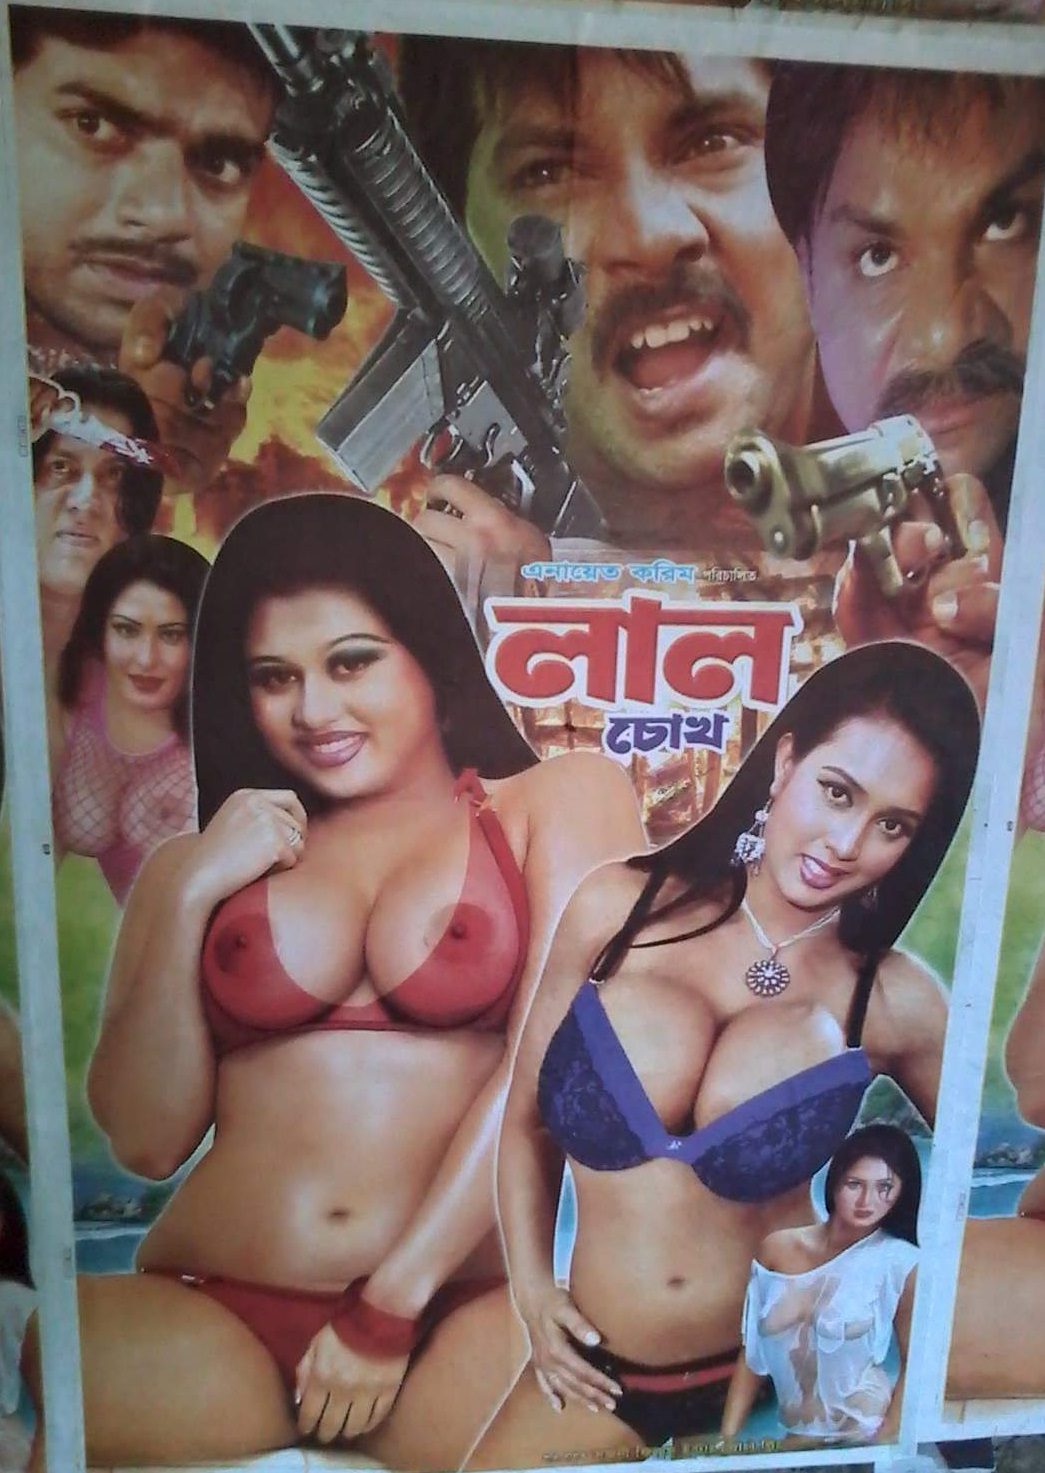 Lal Chokh 2021 Bangla Hot Movie 720p HDRip 1.3GB x264 AAC